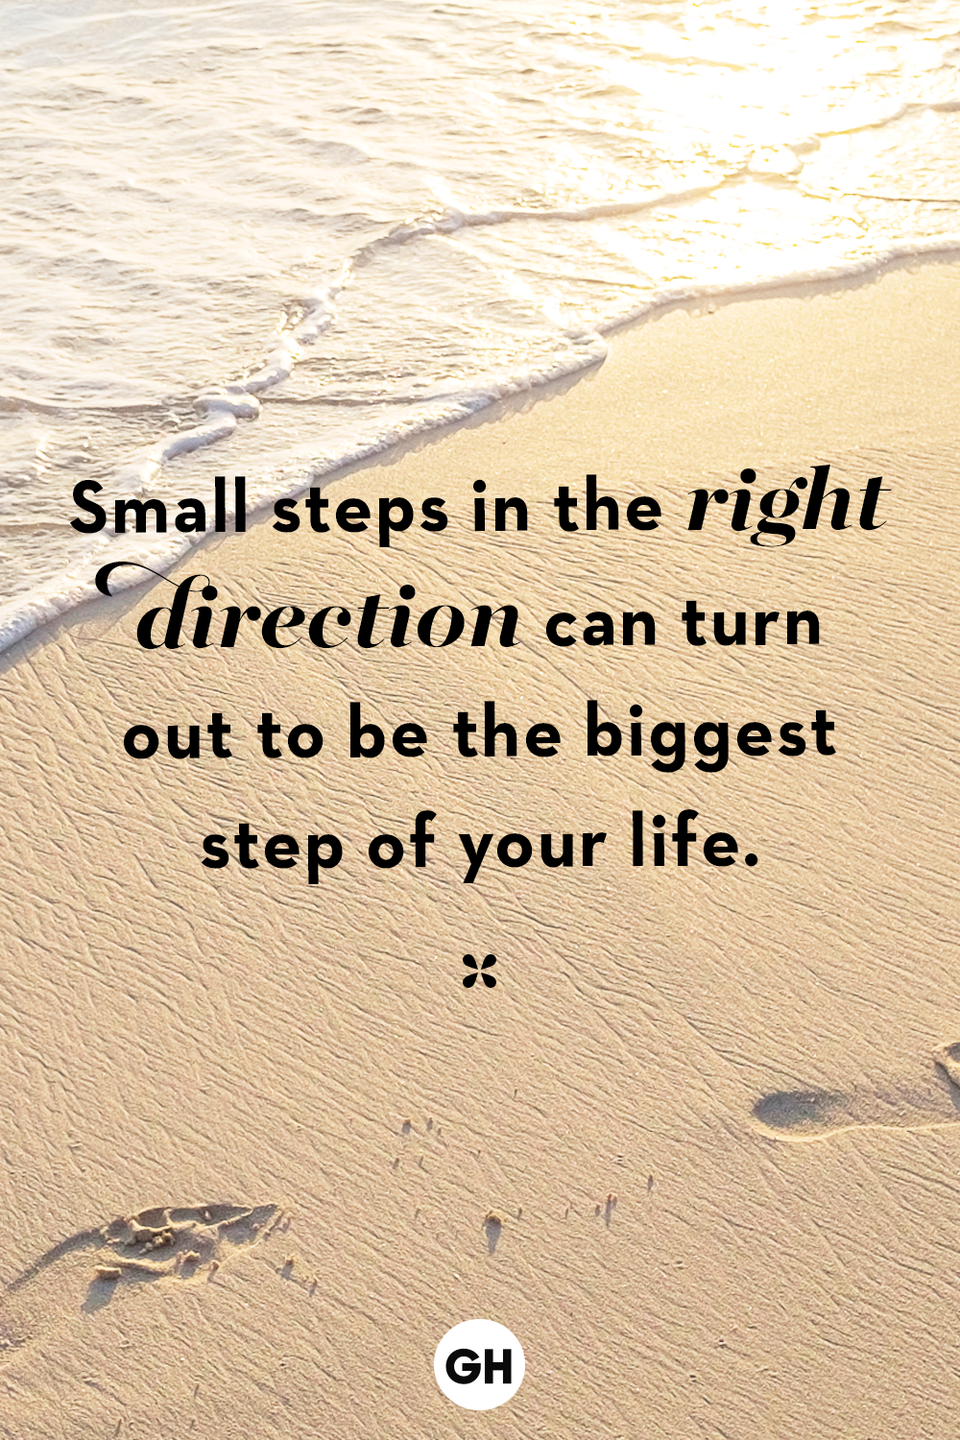 <p>Small steps in the right direction can turn out to be the biggest step of your life.</p>